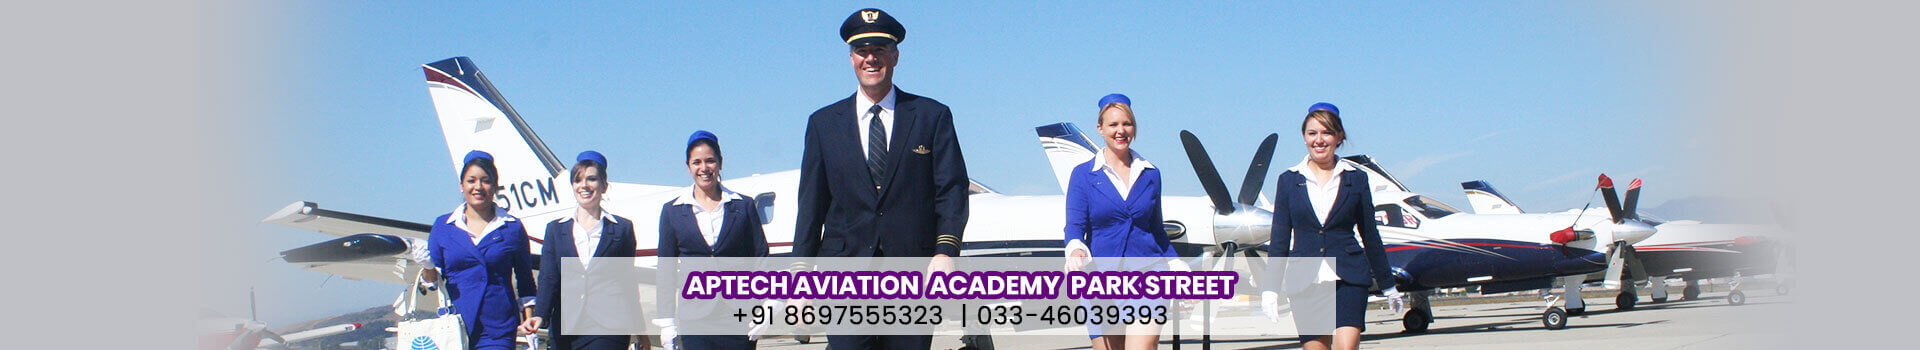 career in aviation institute